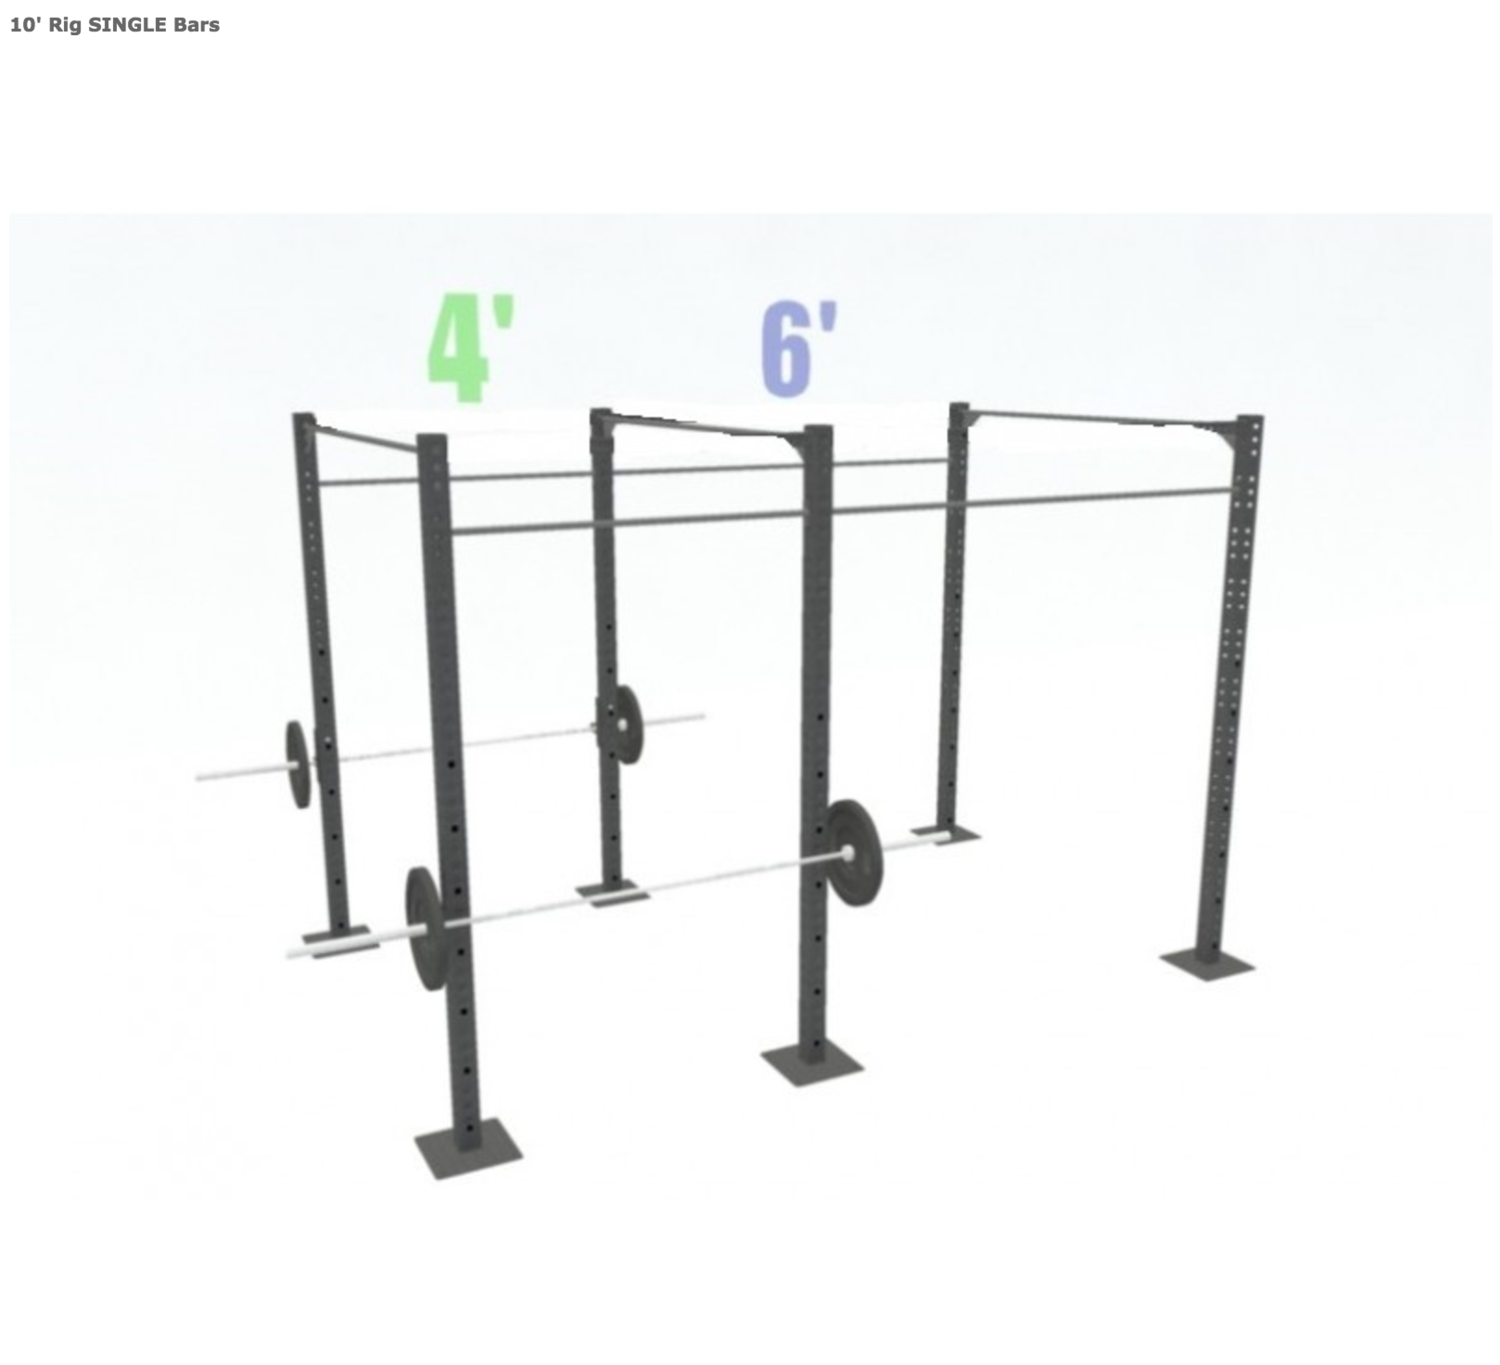 10' FREESTANDING BASIC SINGLE BARS